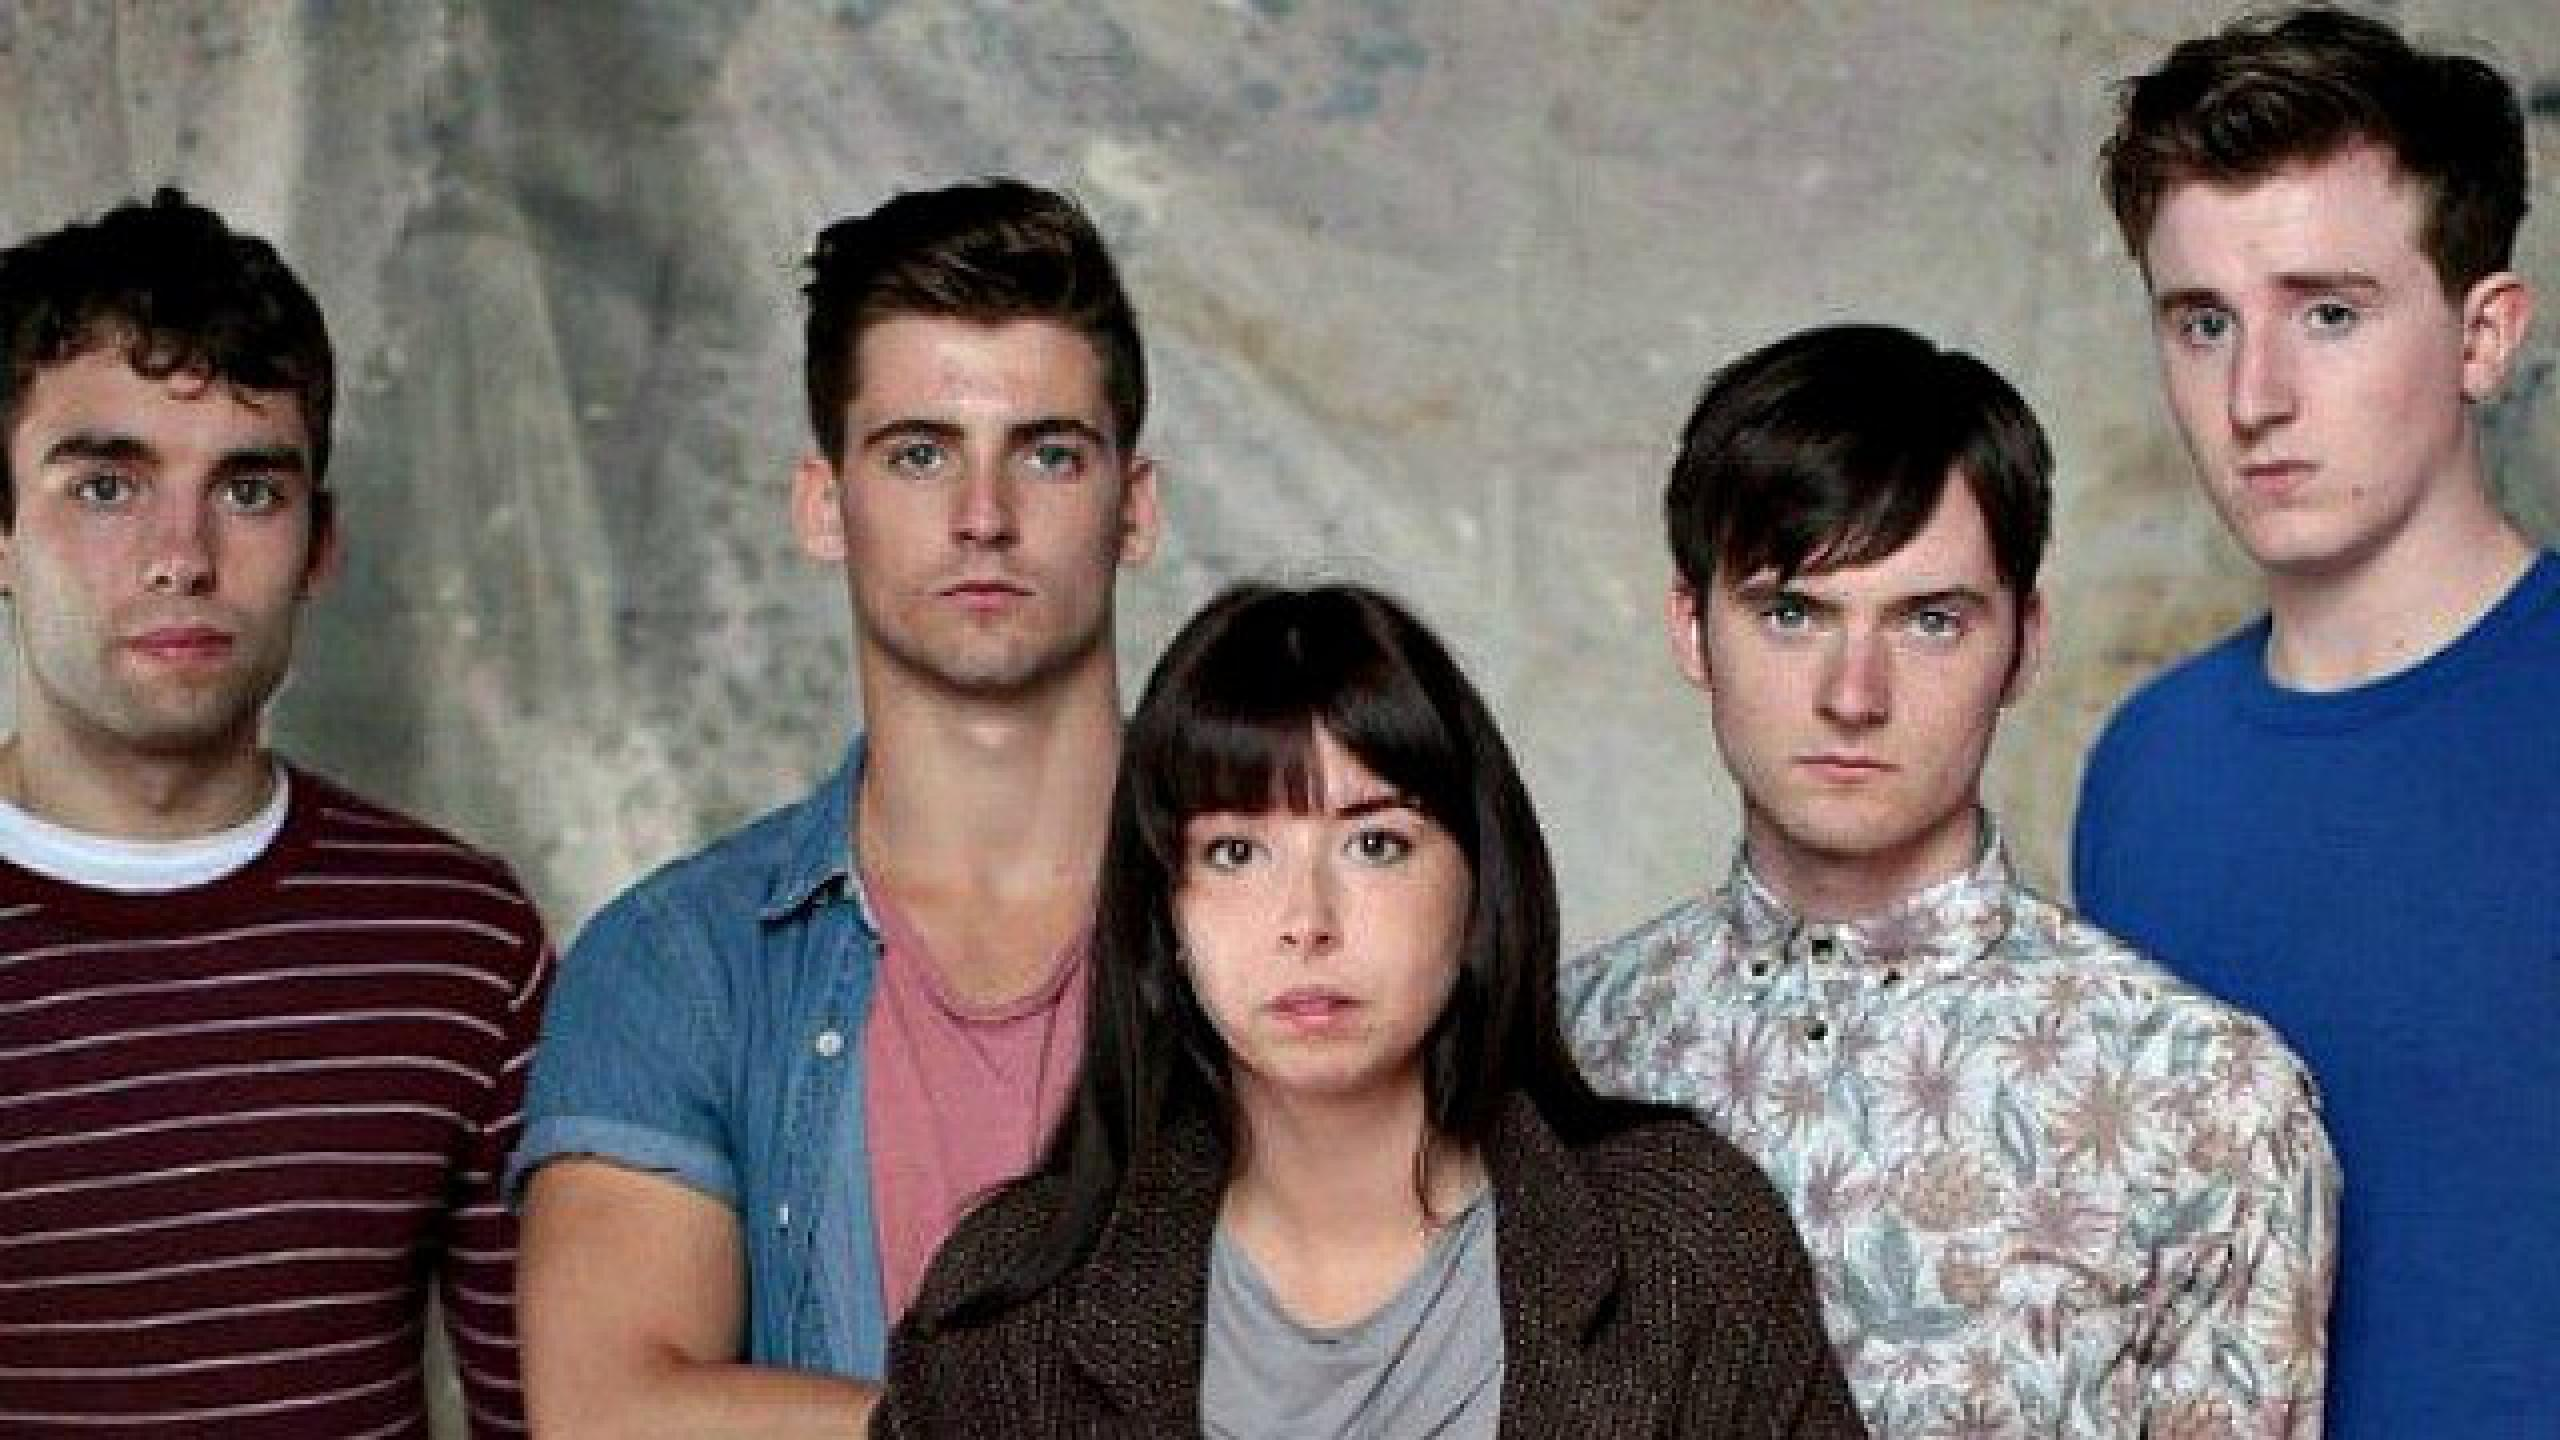 Little Green Cars Tour Dates 2019 2020 Tickets And Concerts Wegow